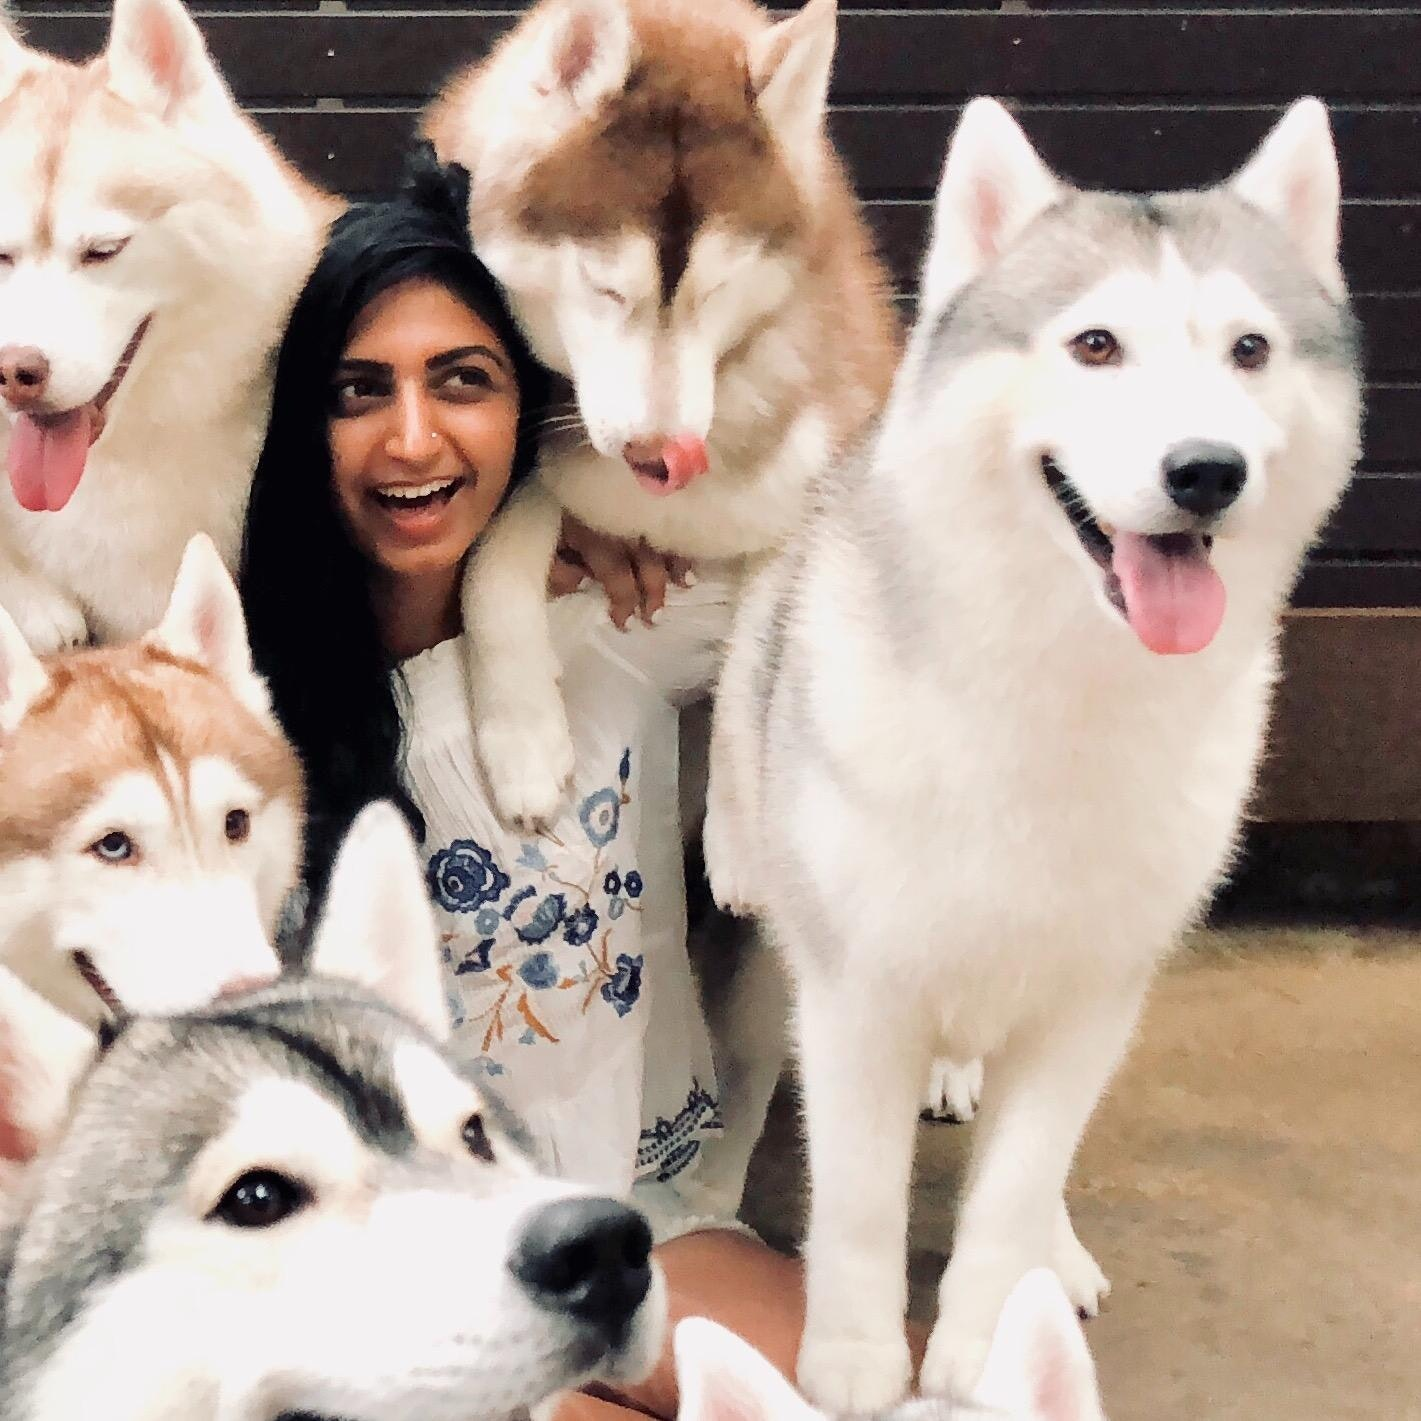 Komal's dog day care